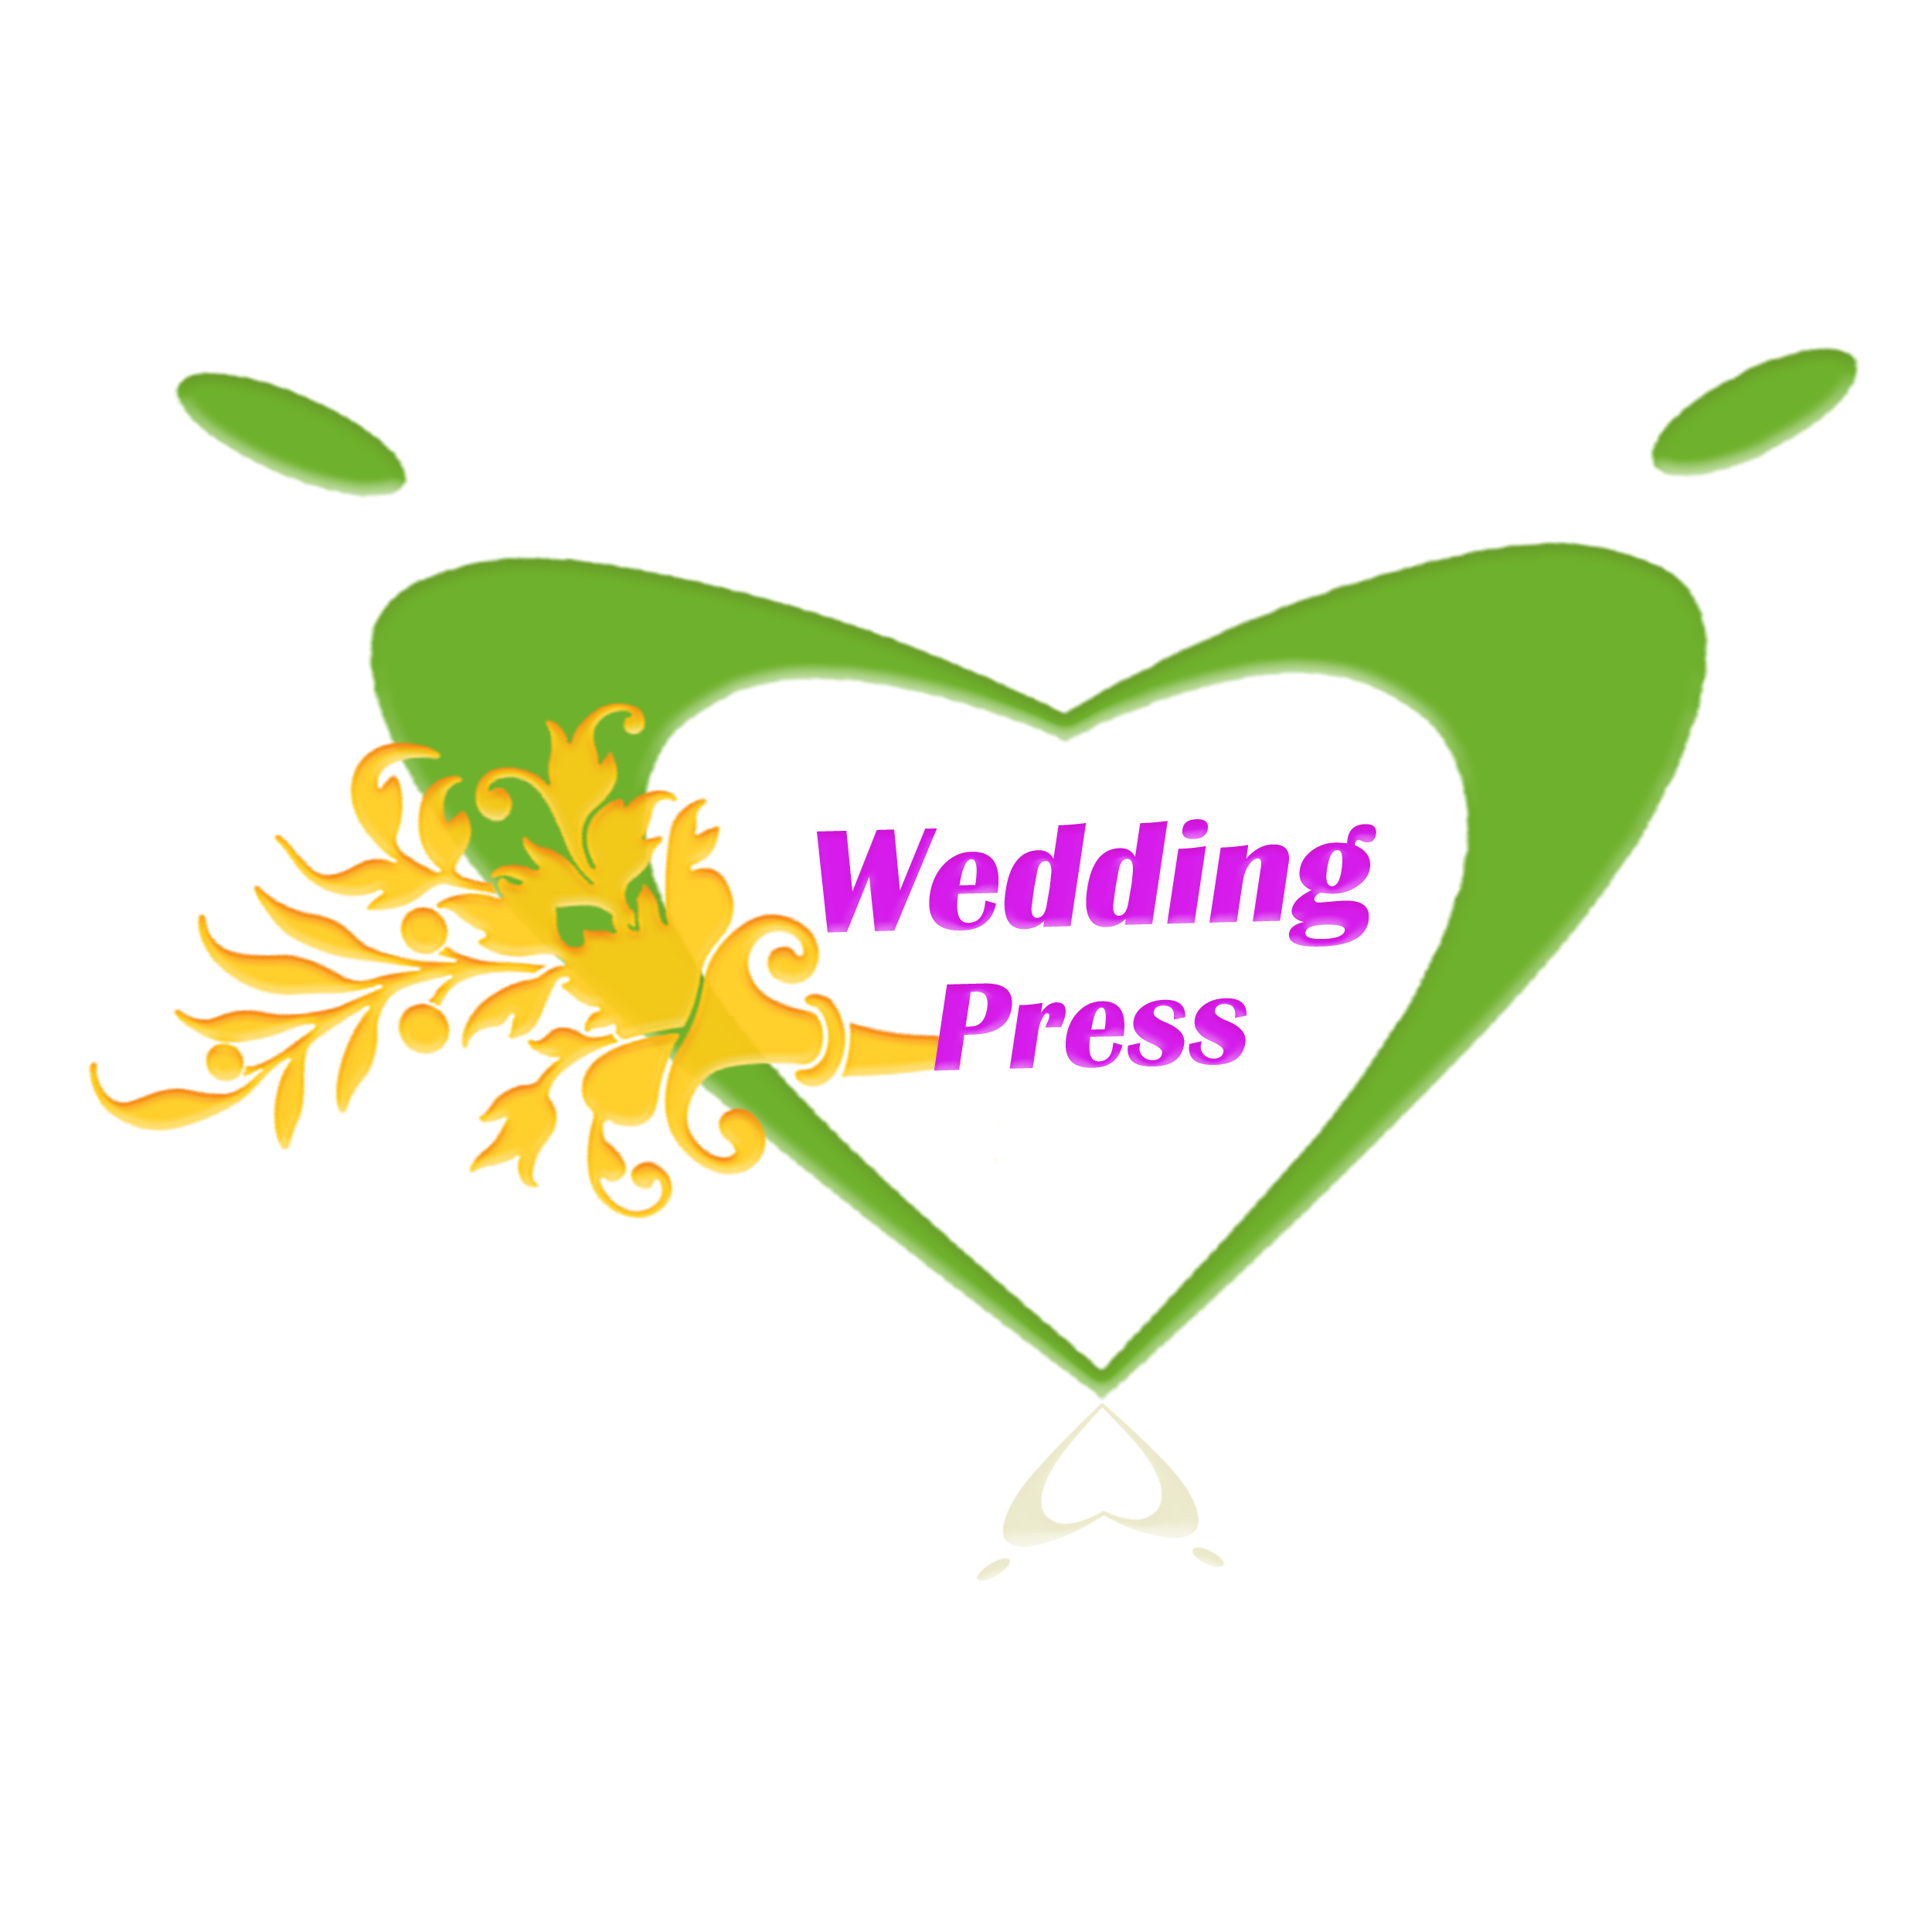 Logo Design by Roberto Sibbaluca - Entry No. 26 in the Logo Design Contest Wedding Writes Logo Design.